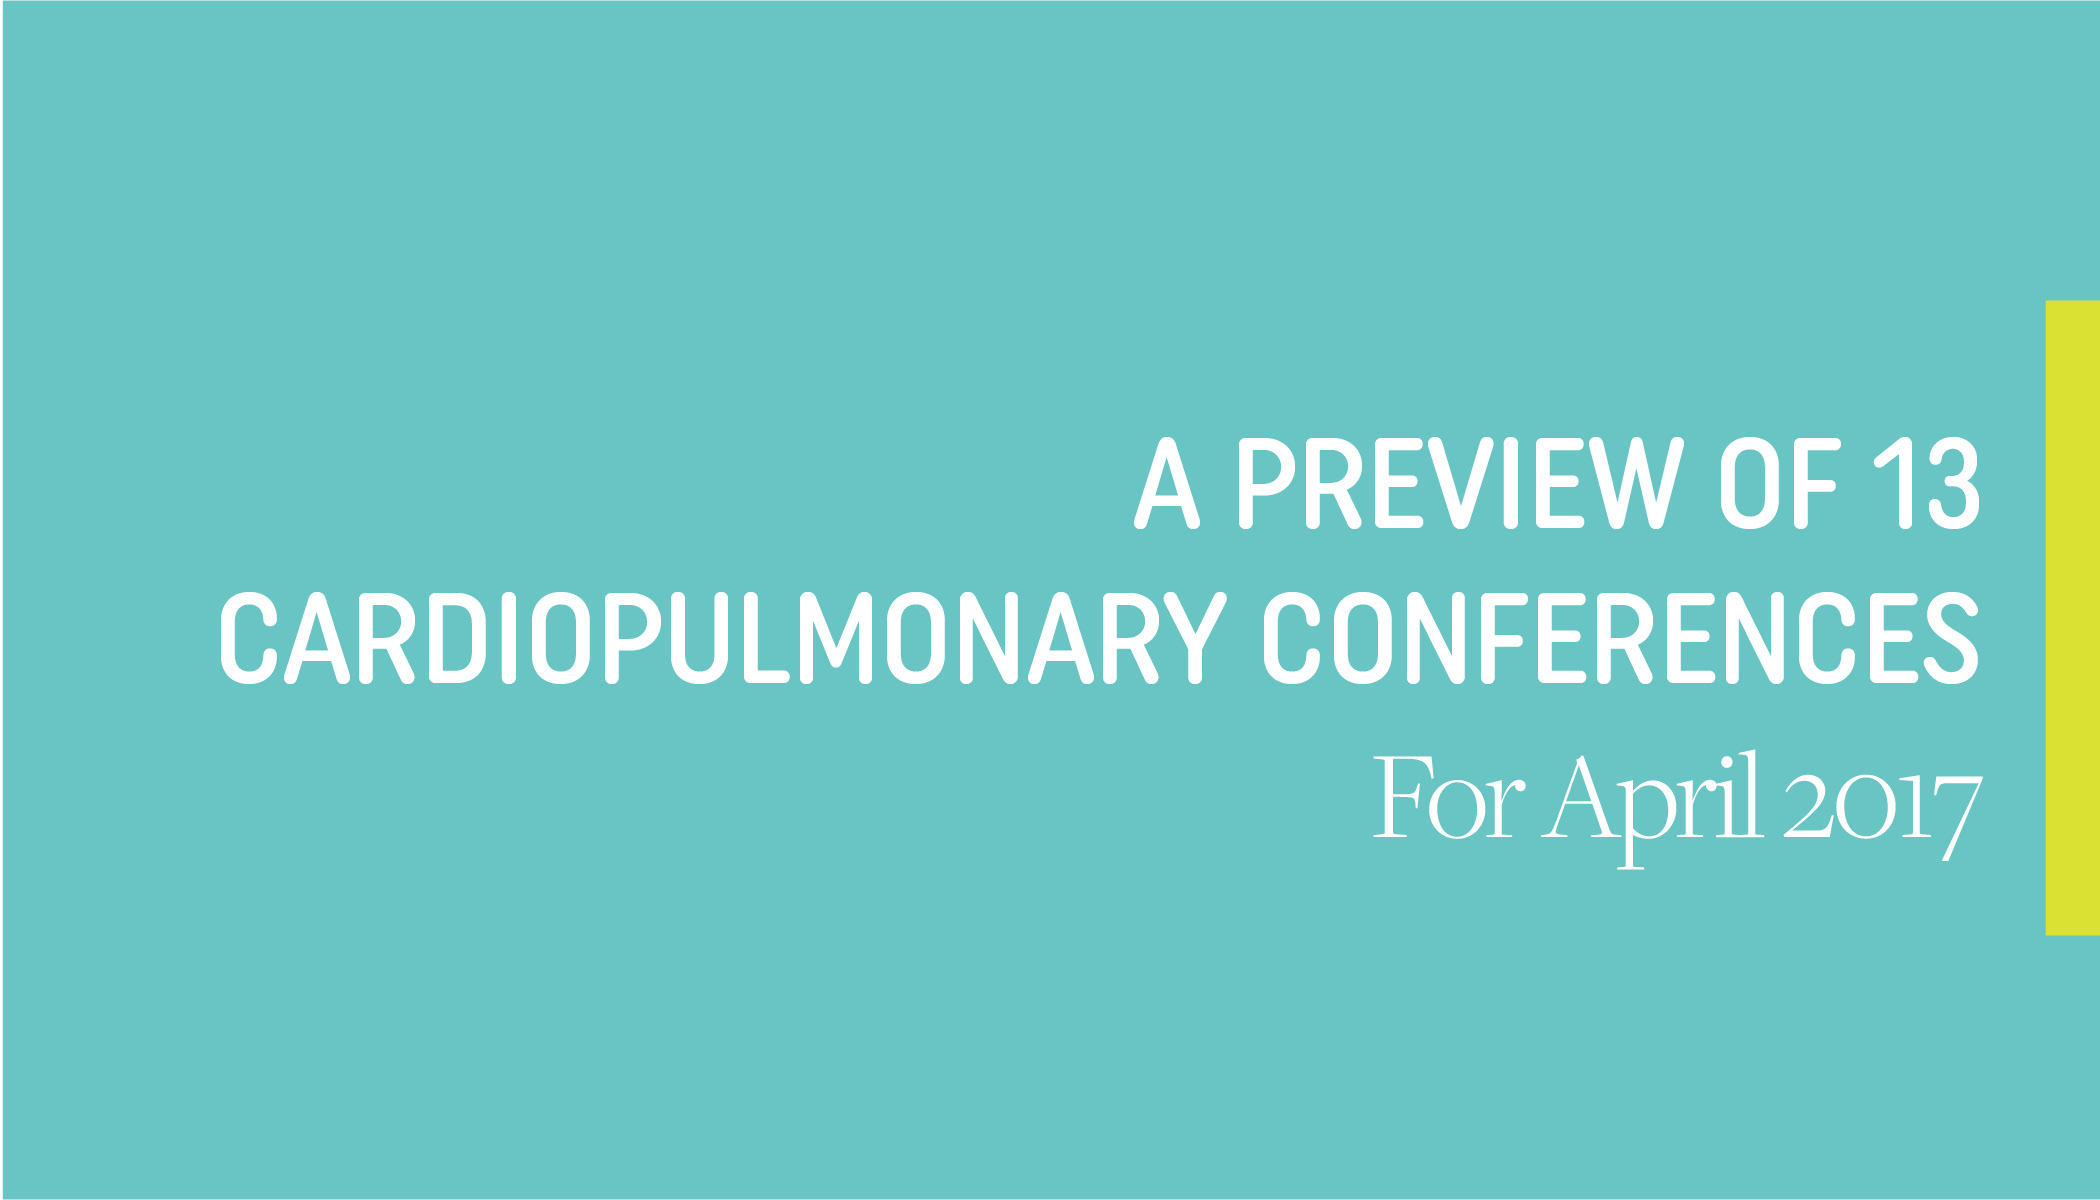 Don't Miss LSI at These 13 Cardiac and Pulmonary Conferences in April 2017